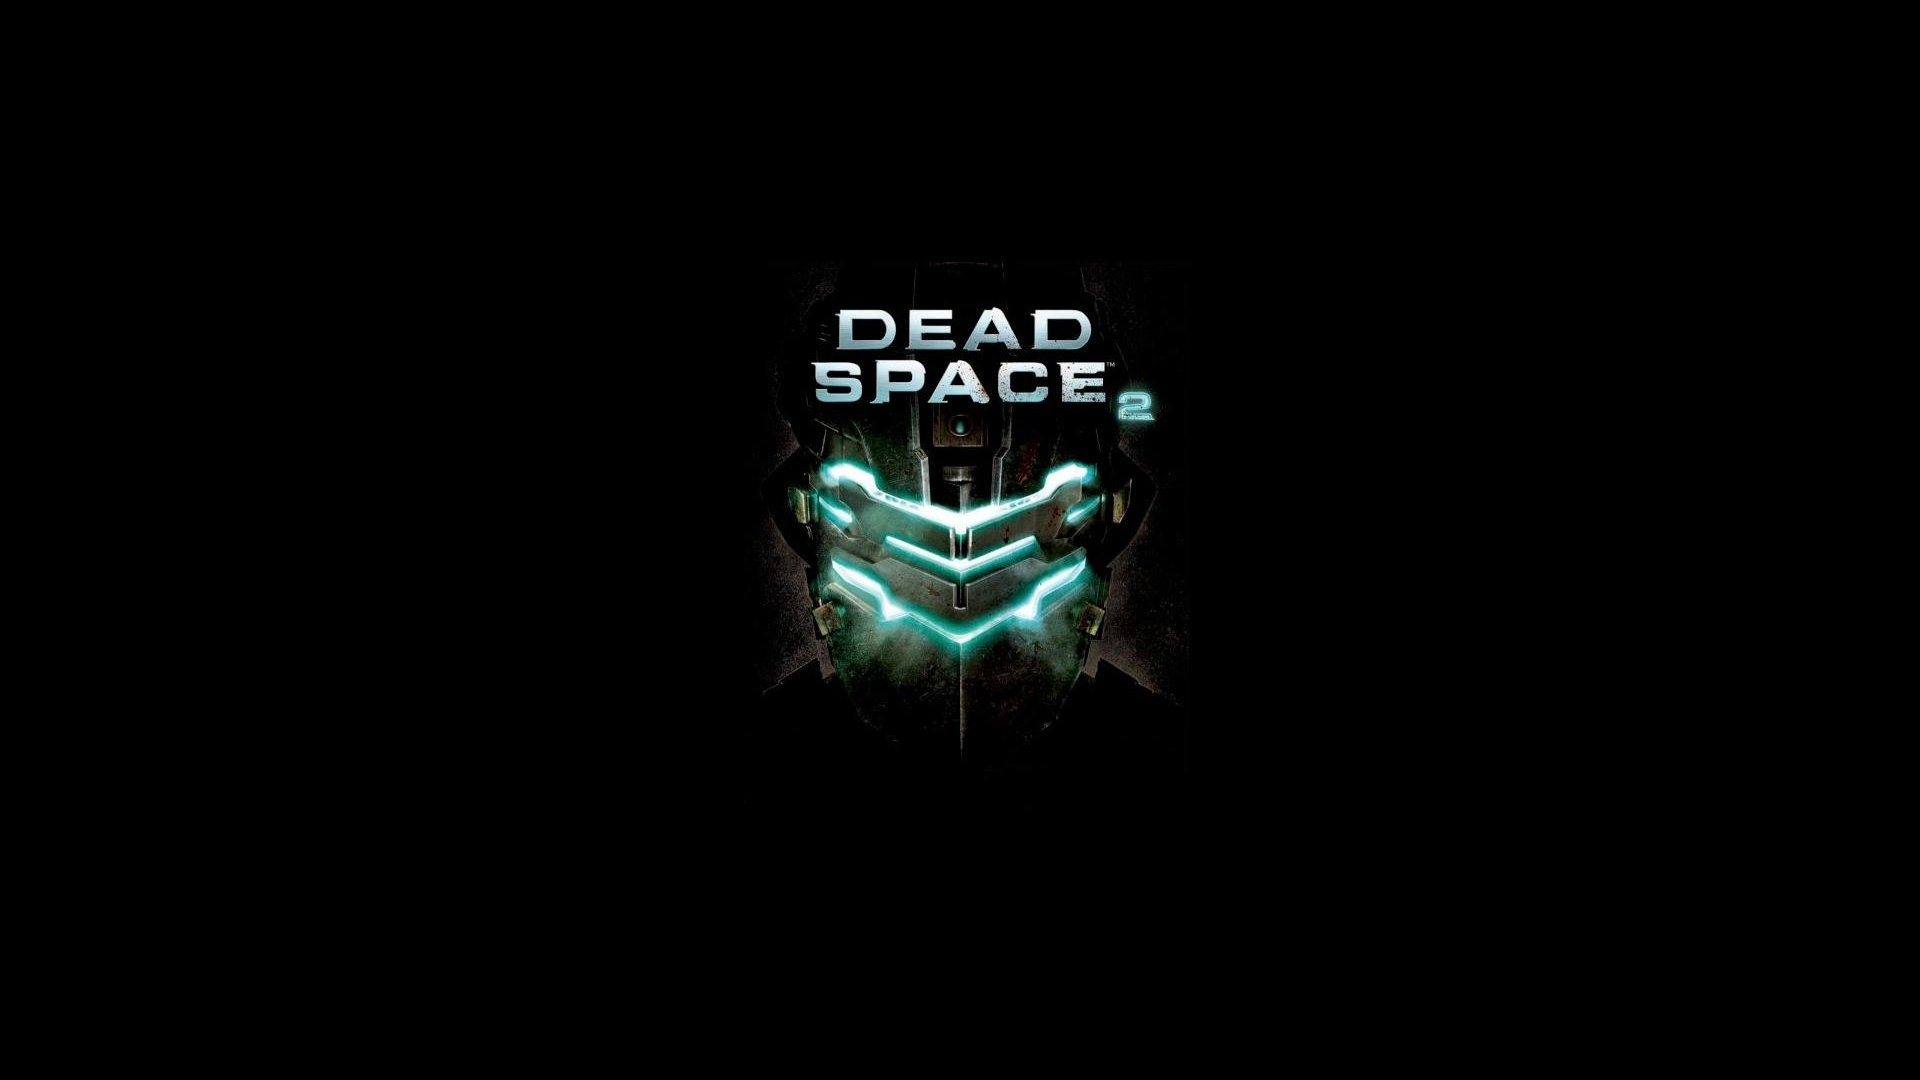 Dead Space 2 wallpaper 1920x1080